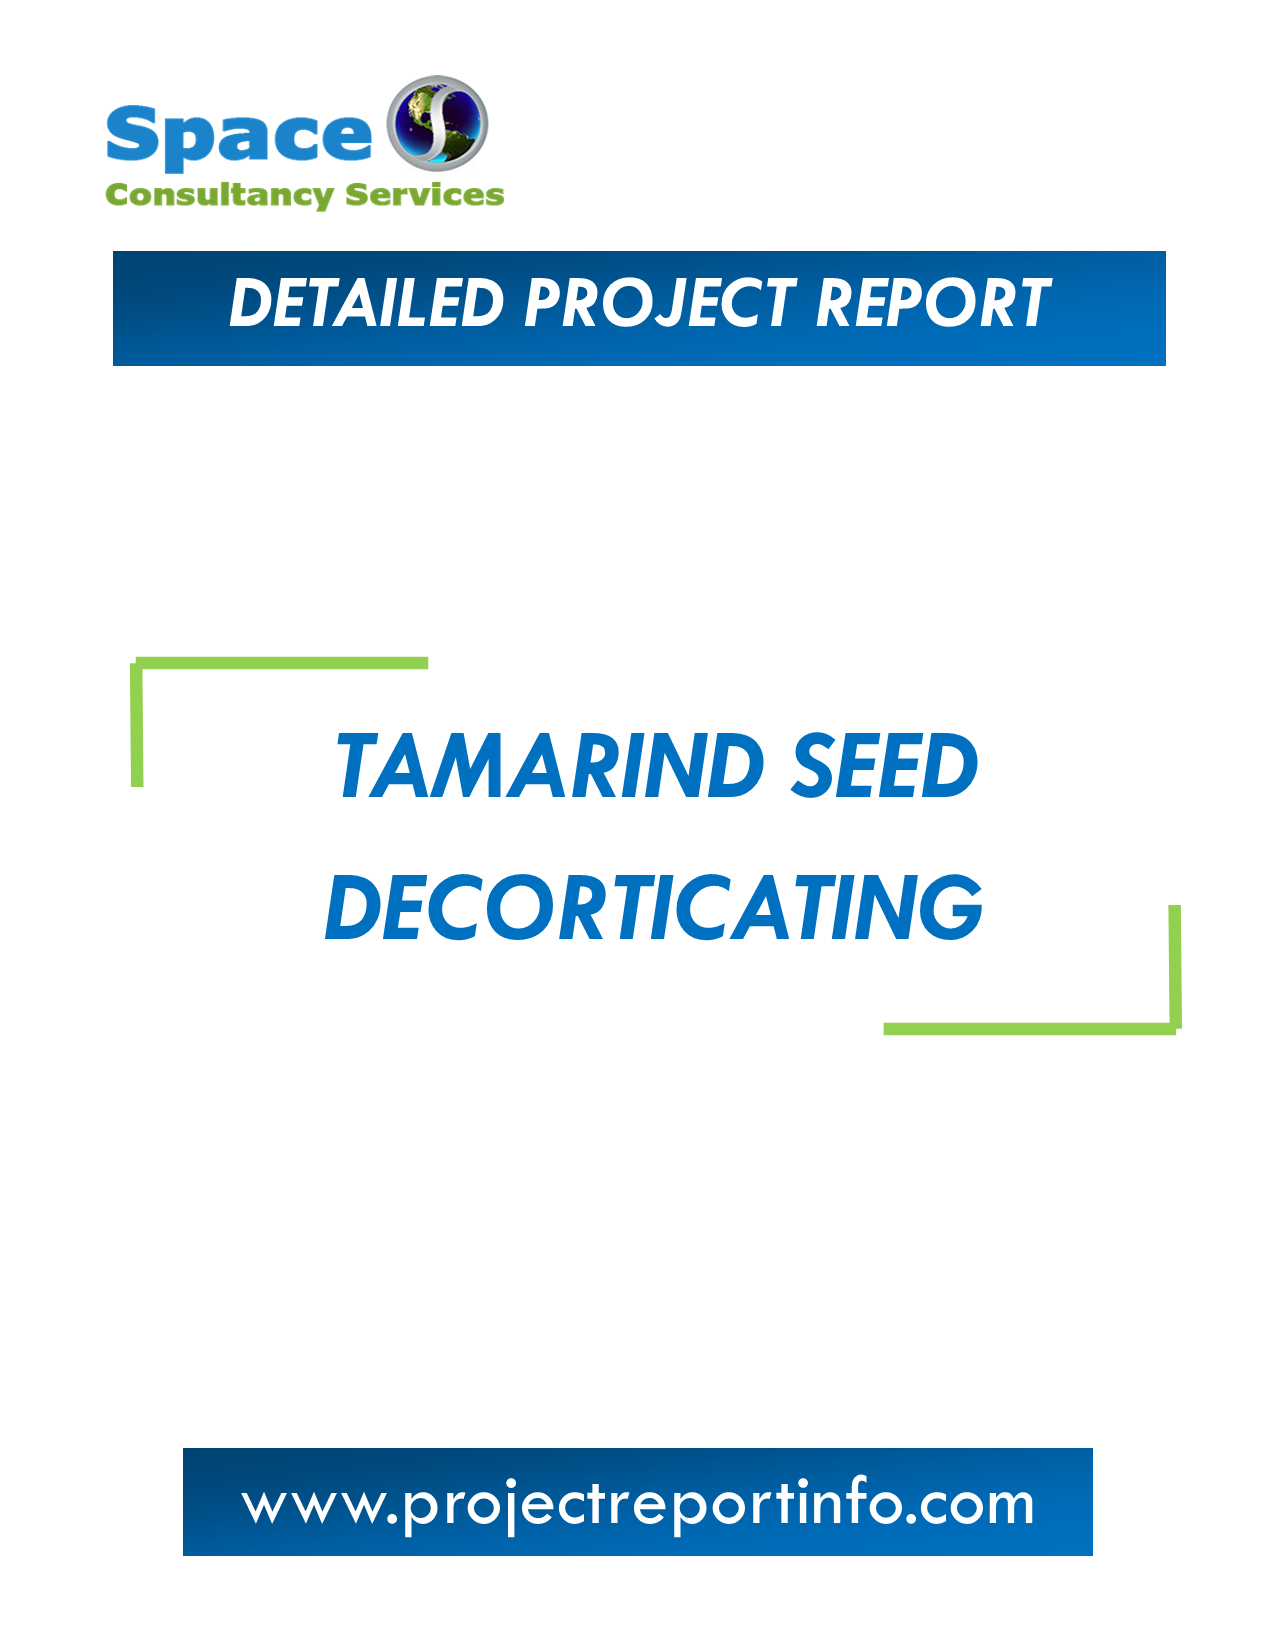 Project Report on Tamarind Seed Decorticating